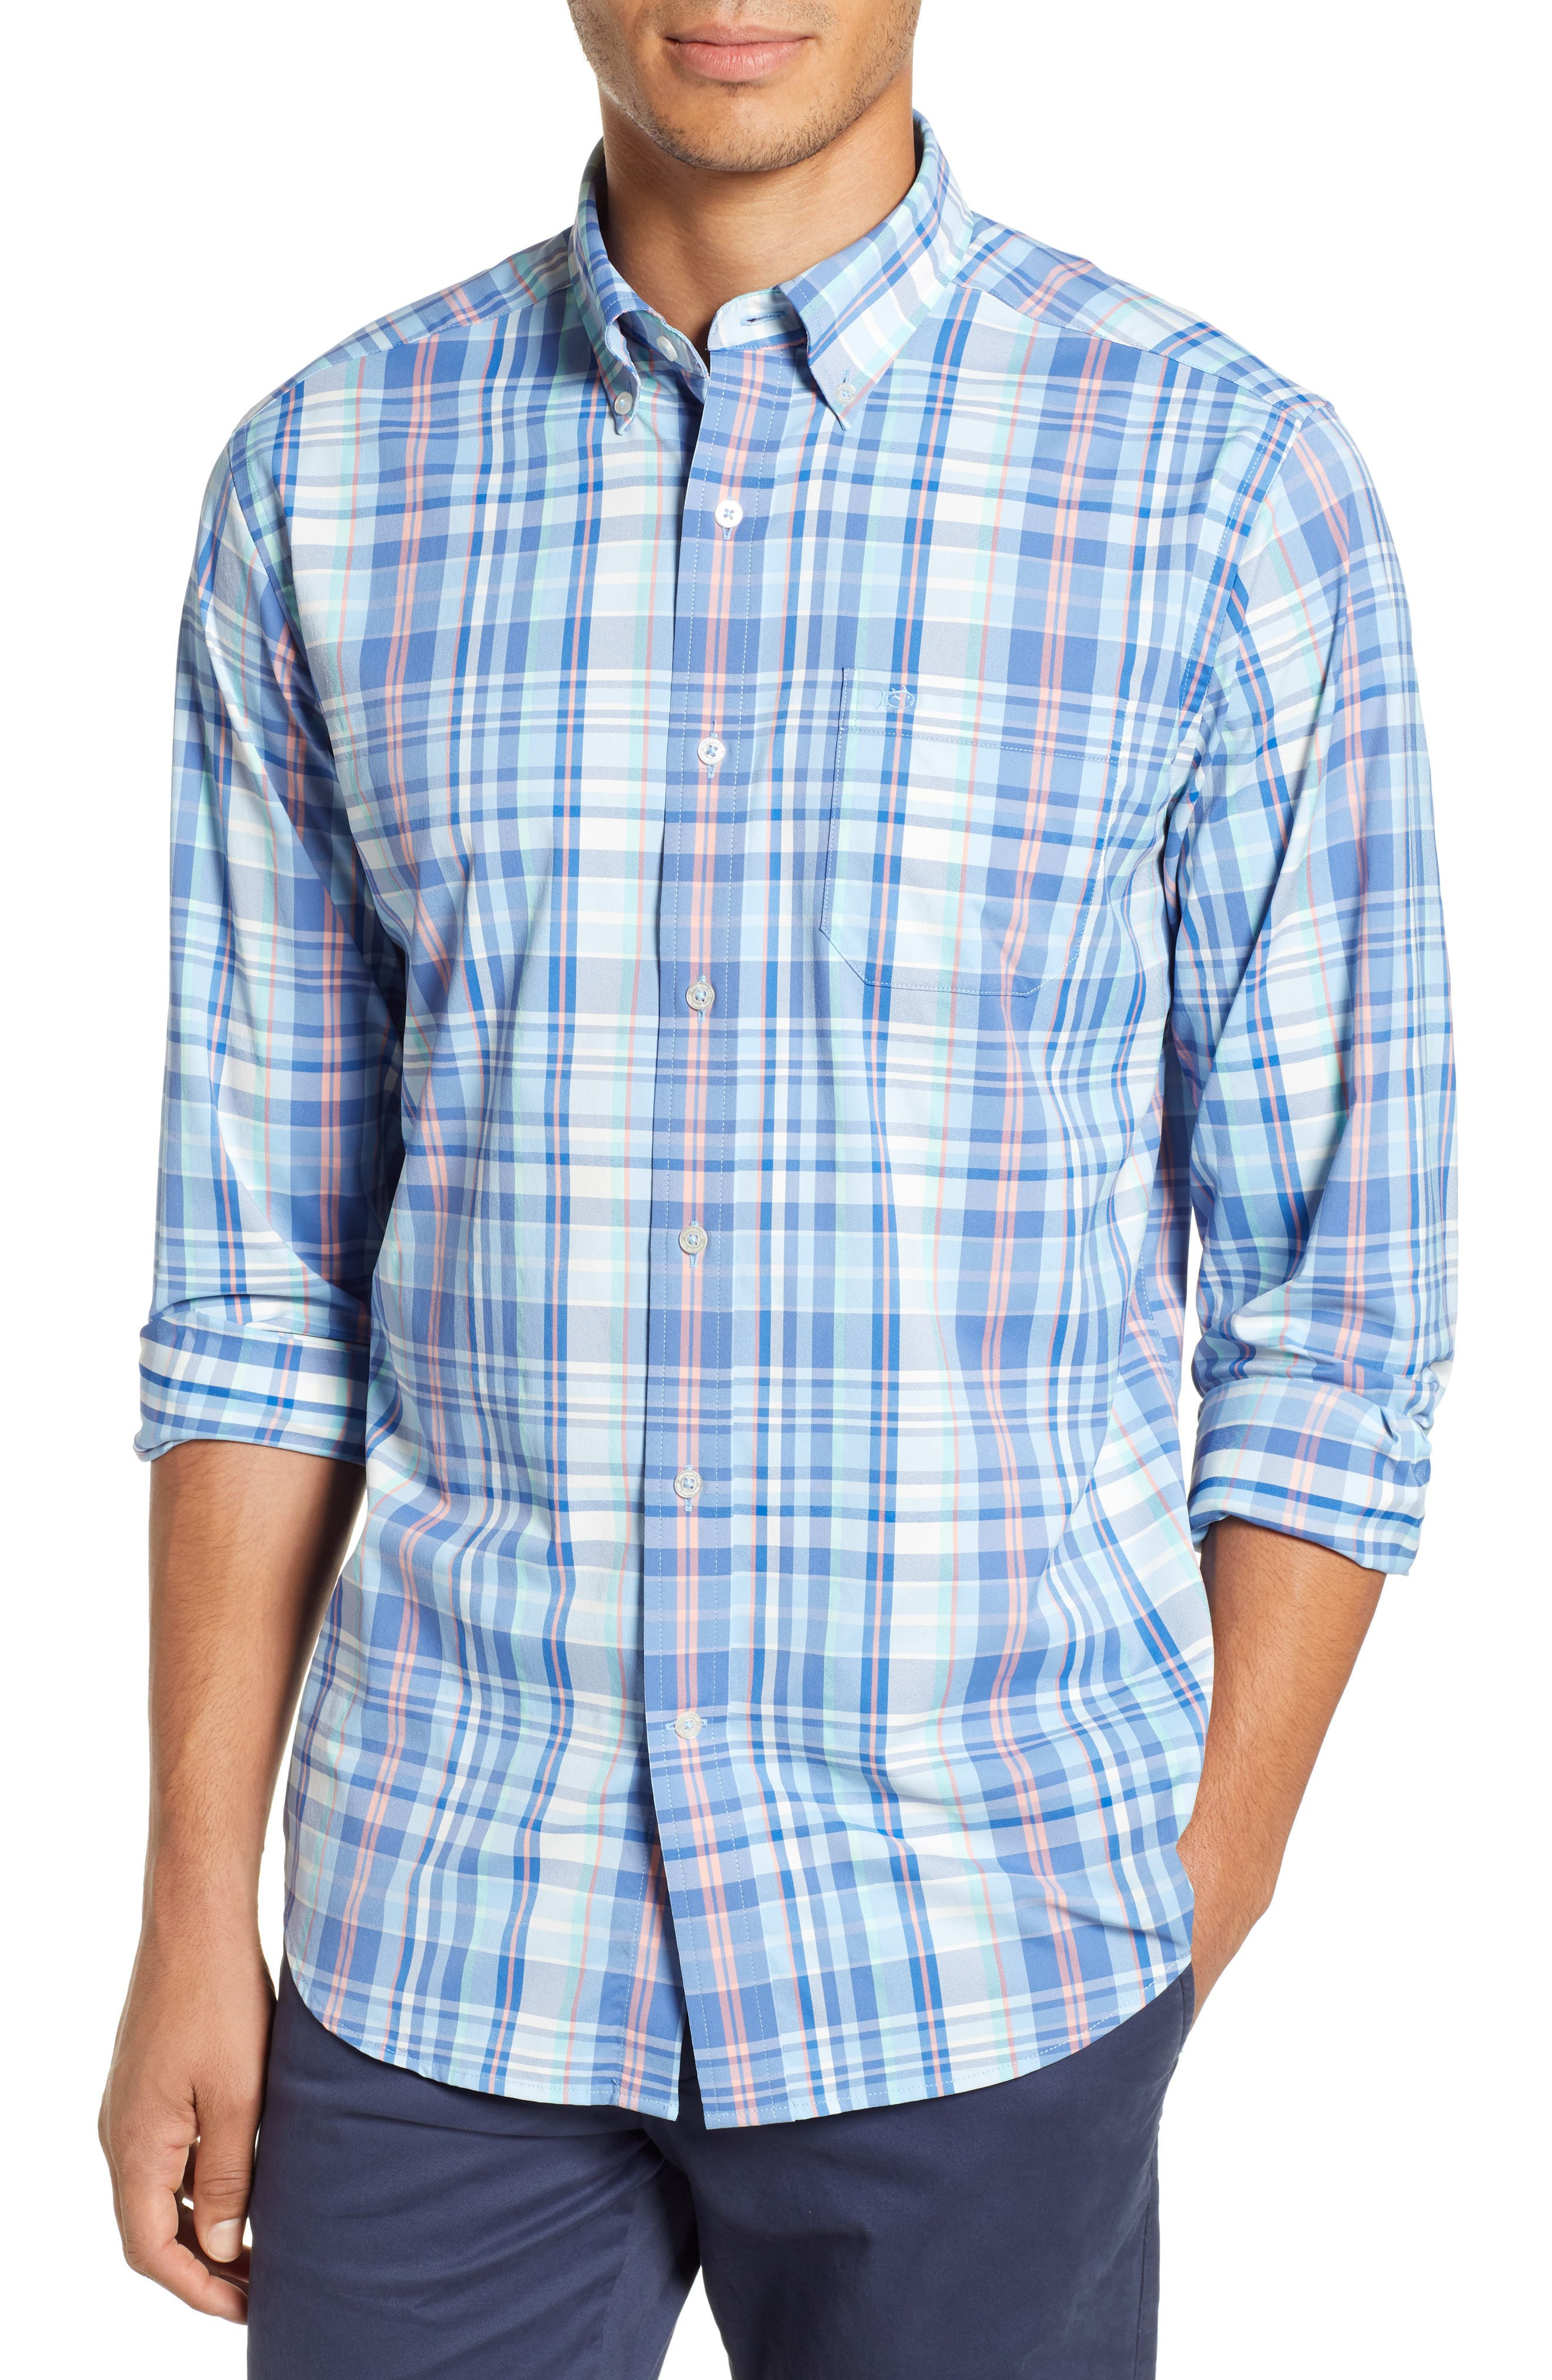 SOUTHERN TIDE Siesta Intercoastal Regular Fit Plaid Performance Sport Shirt in Sky Blue